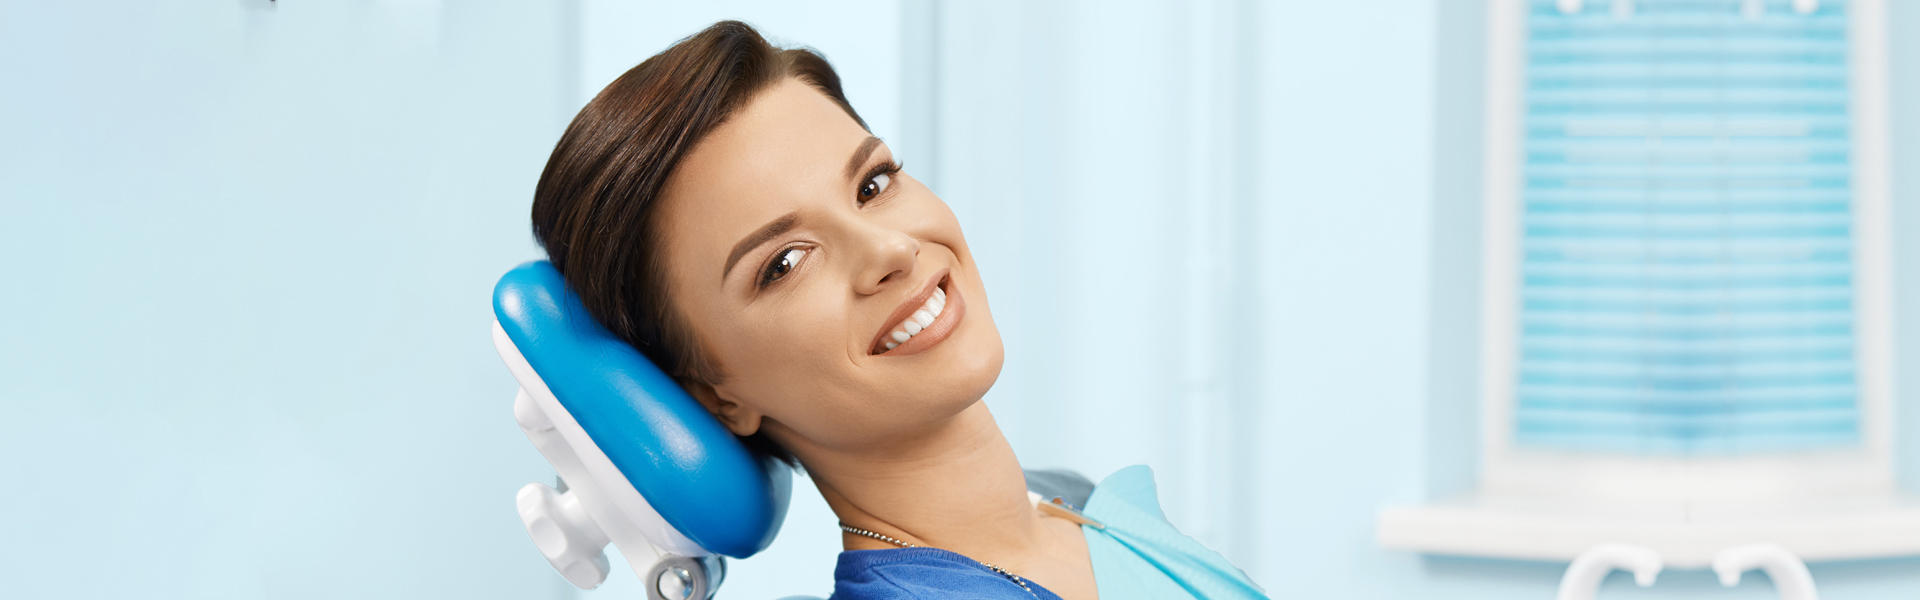 The Right Time to Have Dental Crowns Is Now with Friendship Day Bonus Tips